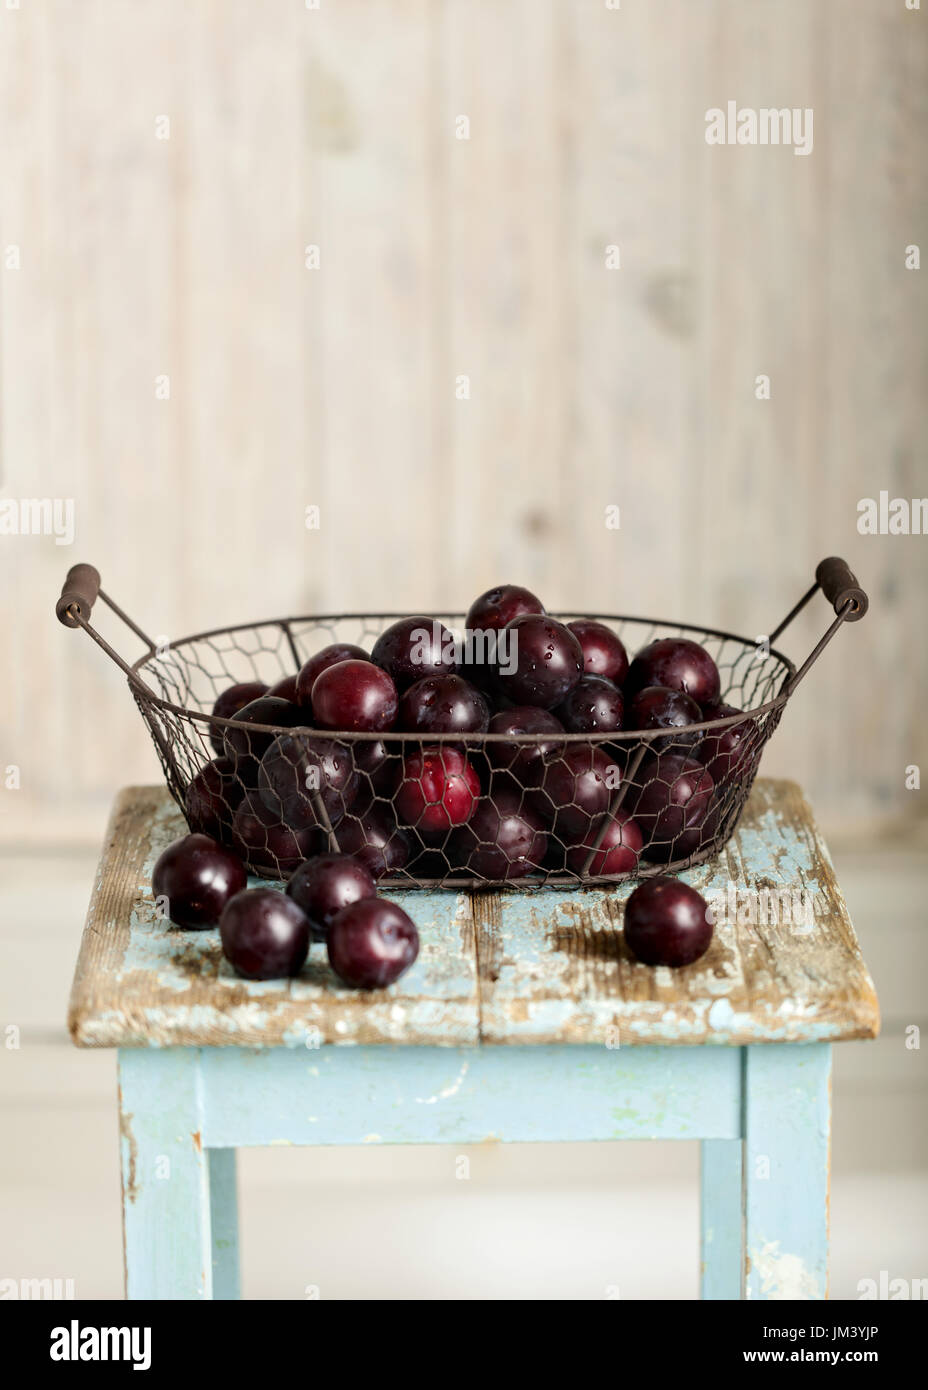 Ripe plums in a basket on a wooden background. Selective focus. Stock Photo